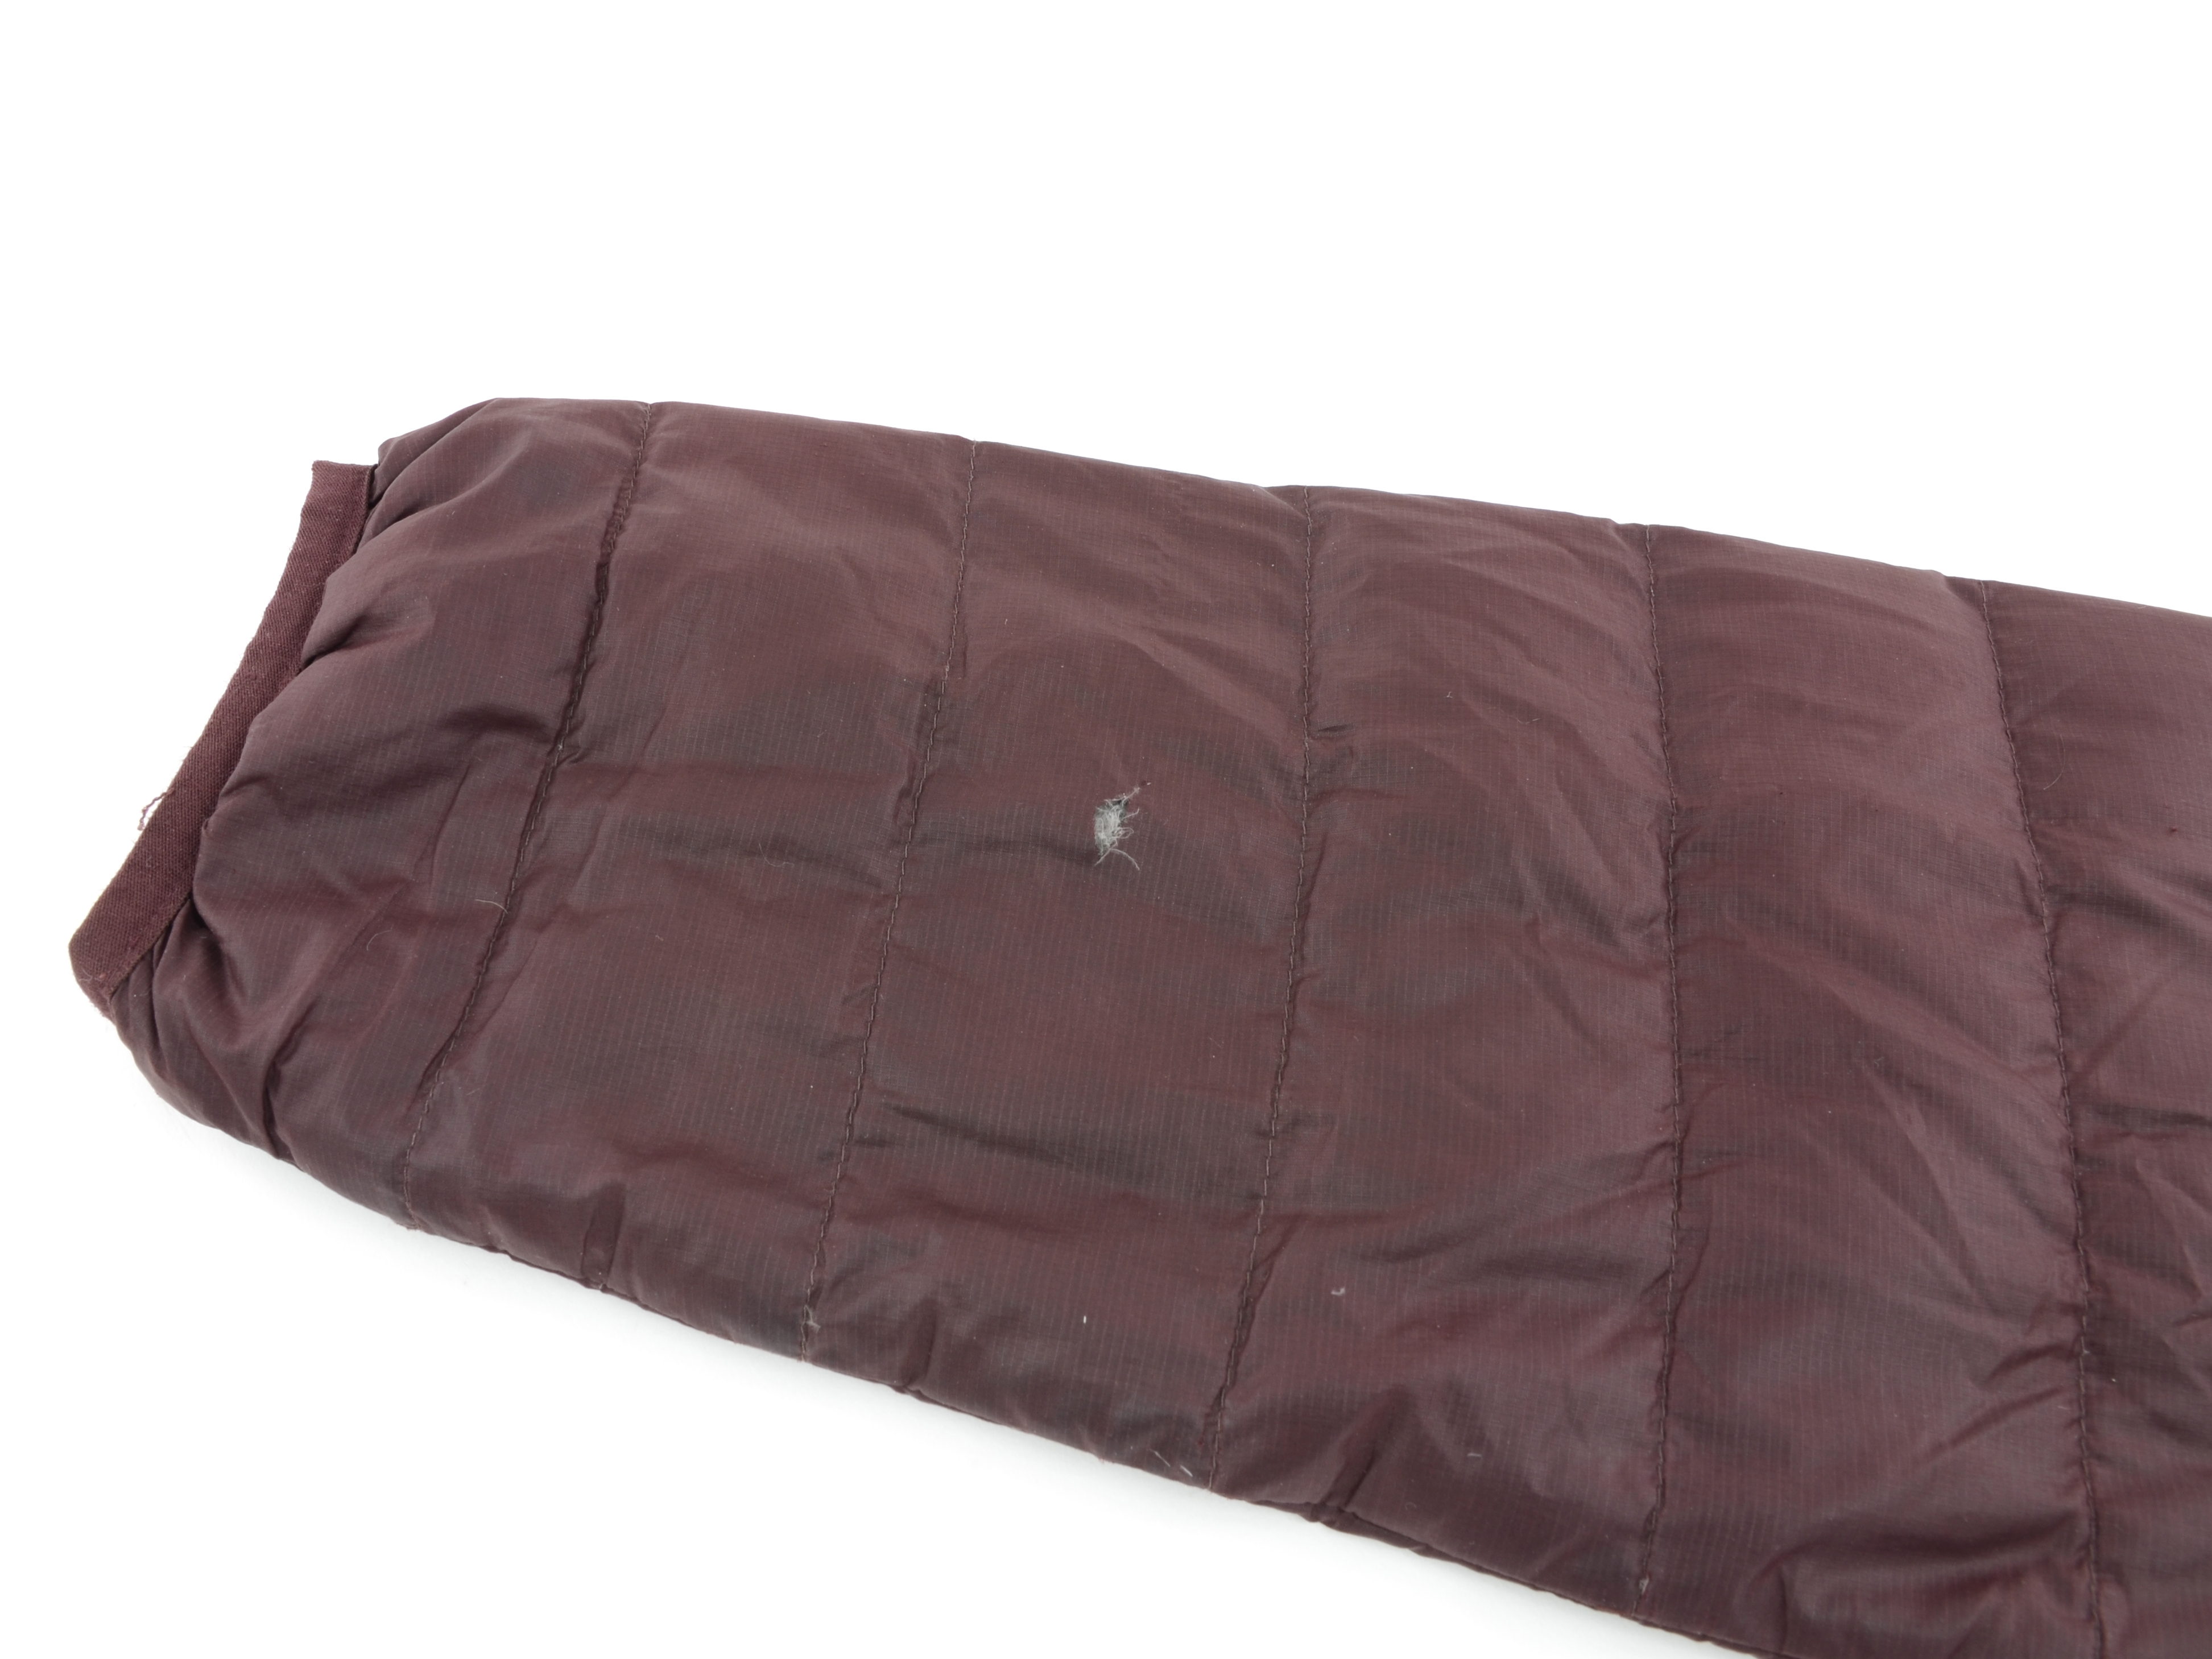 Patch A Patagonia Down Jacket With Repair Tape Ifixit